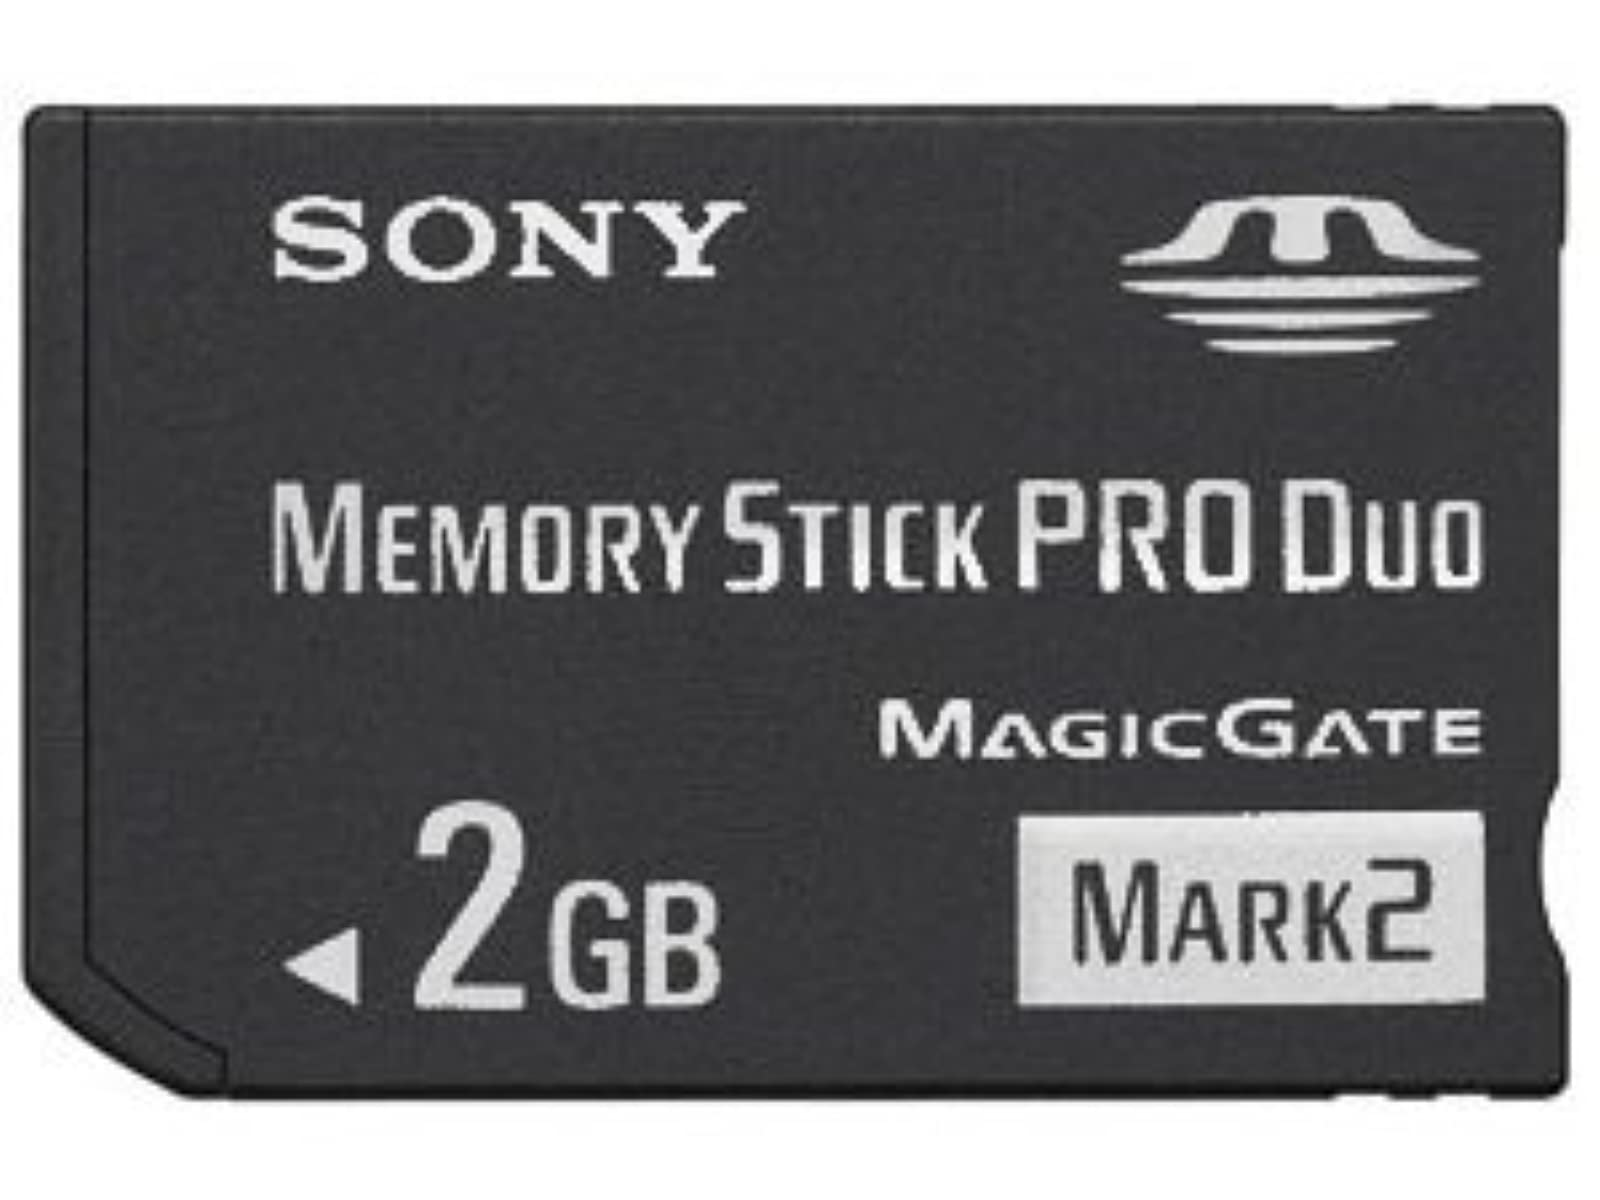 2 GB Sony OEM Pro Duo Mark 2 Memory Stick For PSP